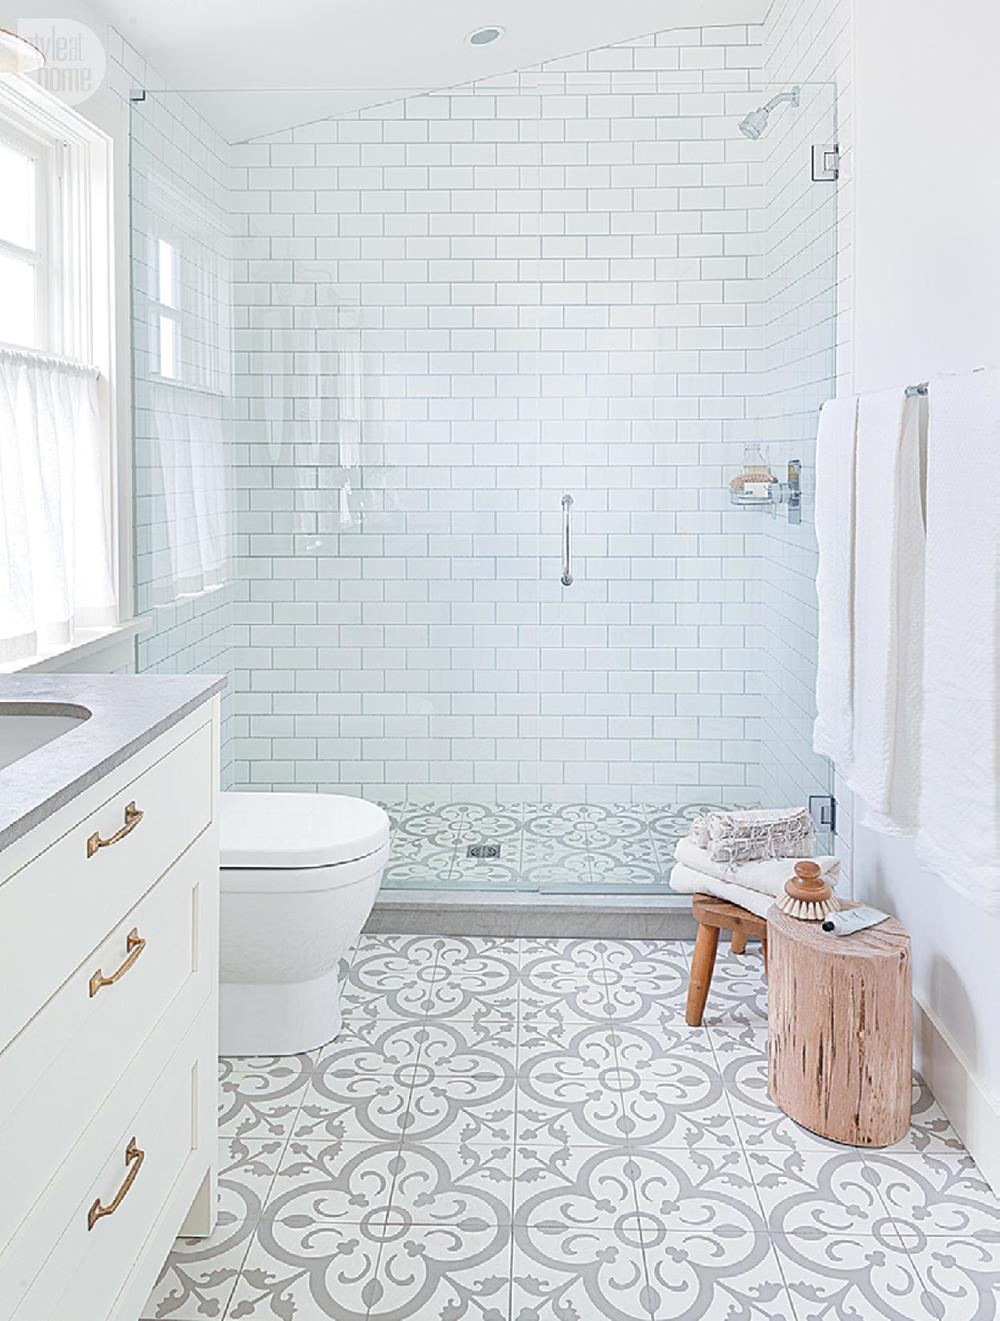 You can get very creative with your tile designs from Style at Home